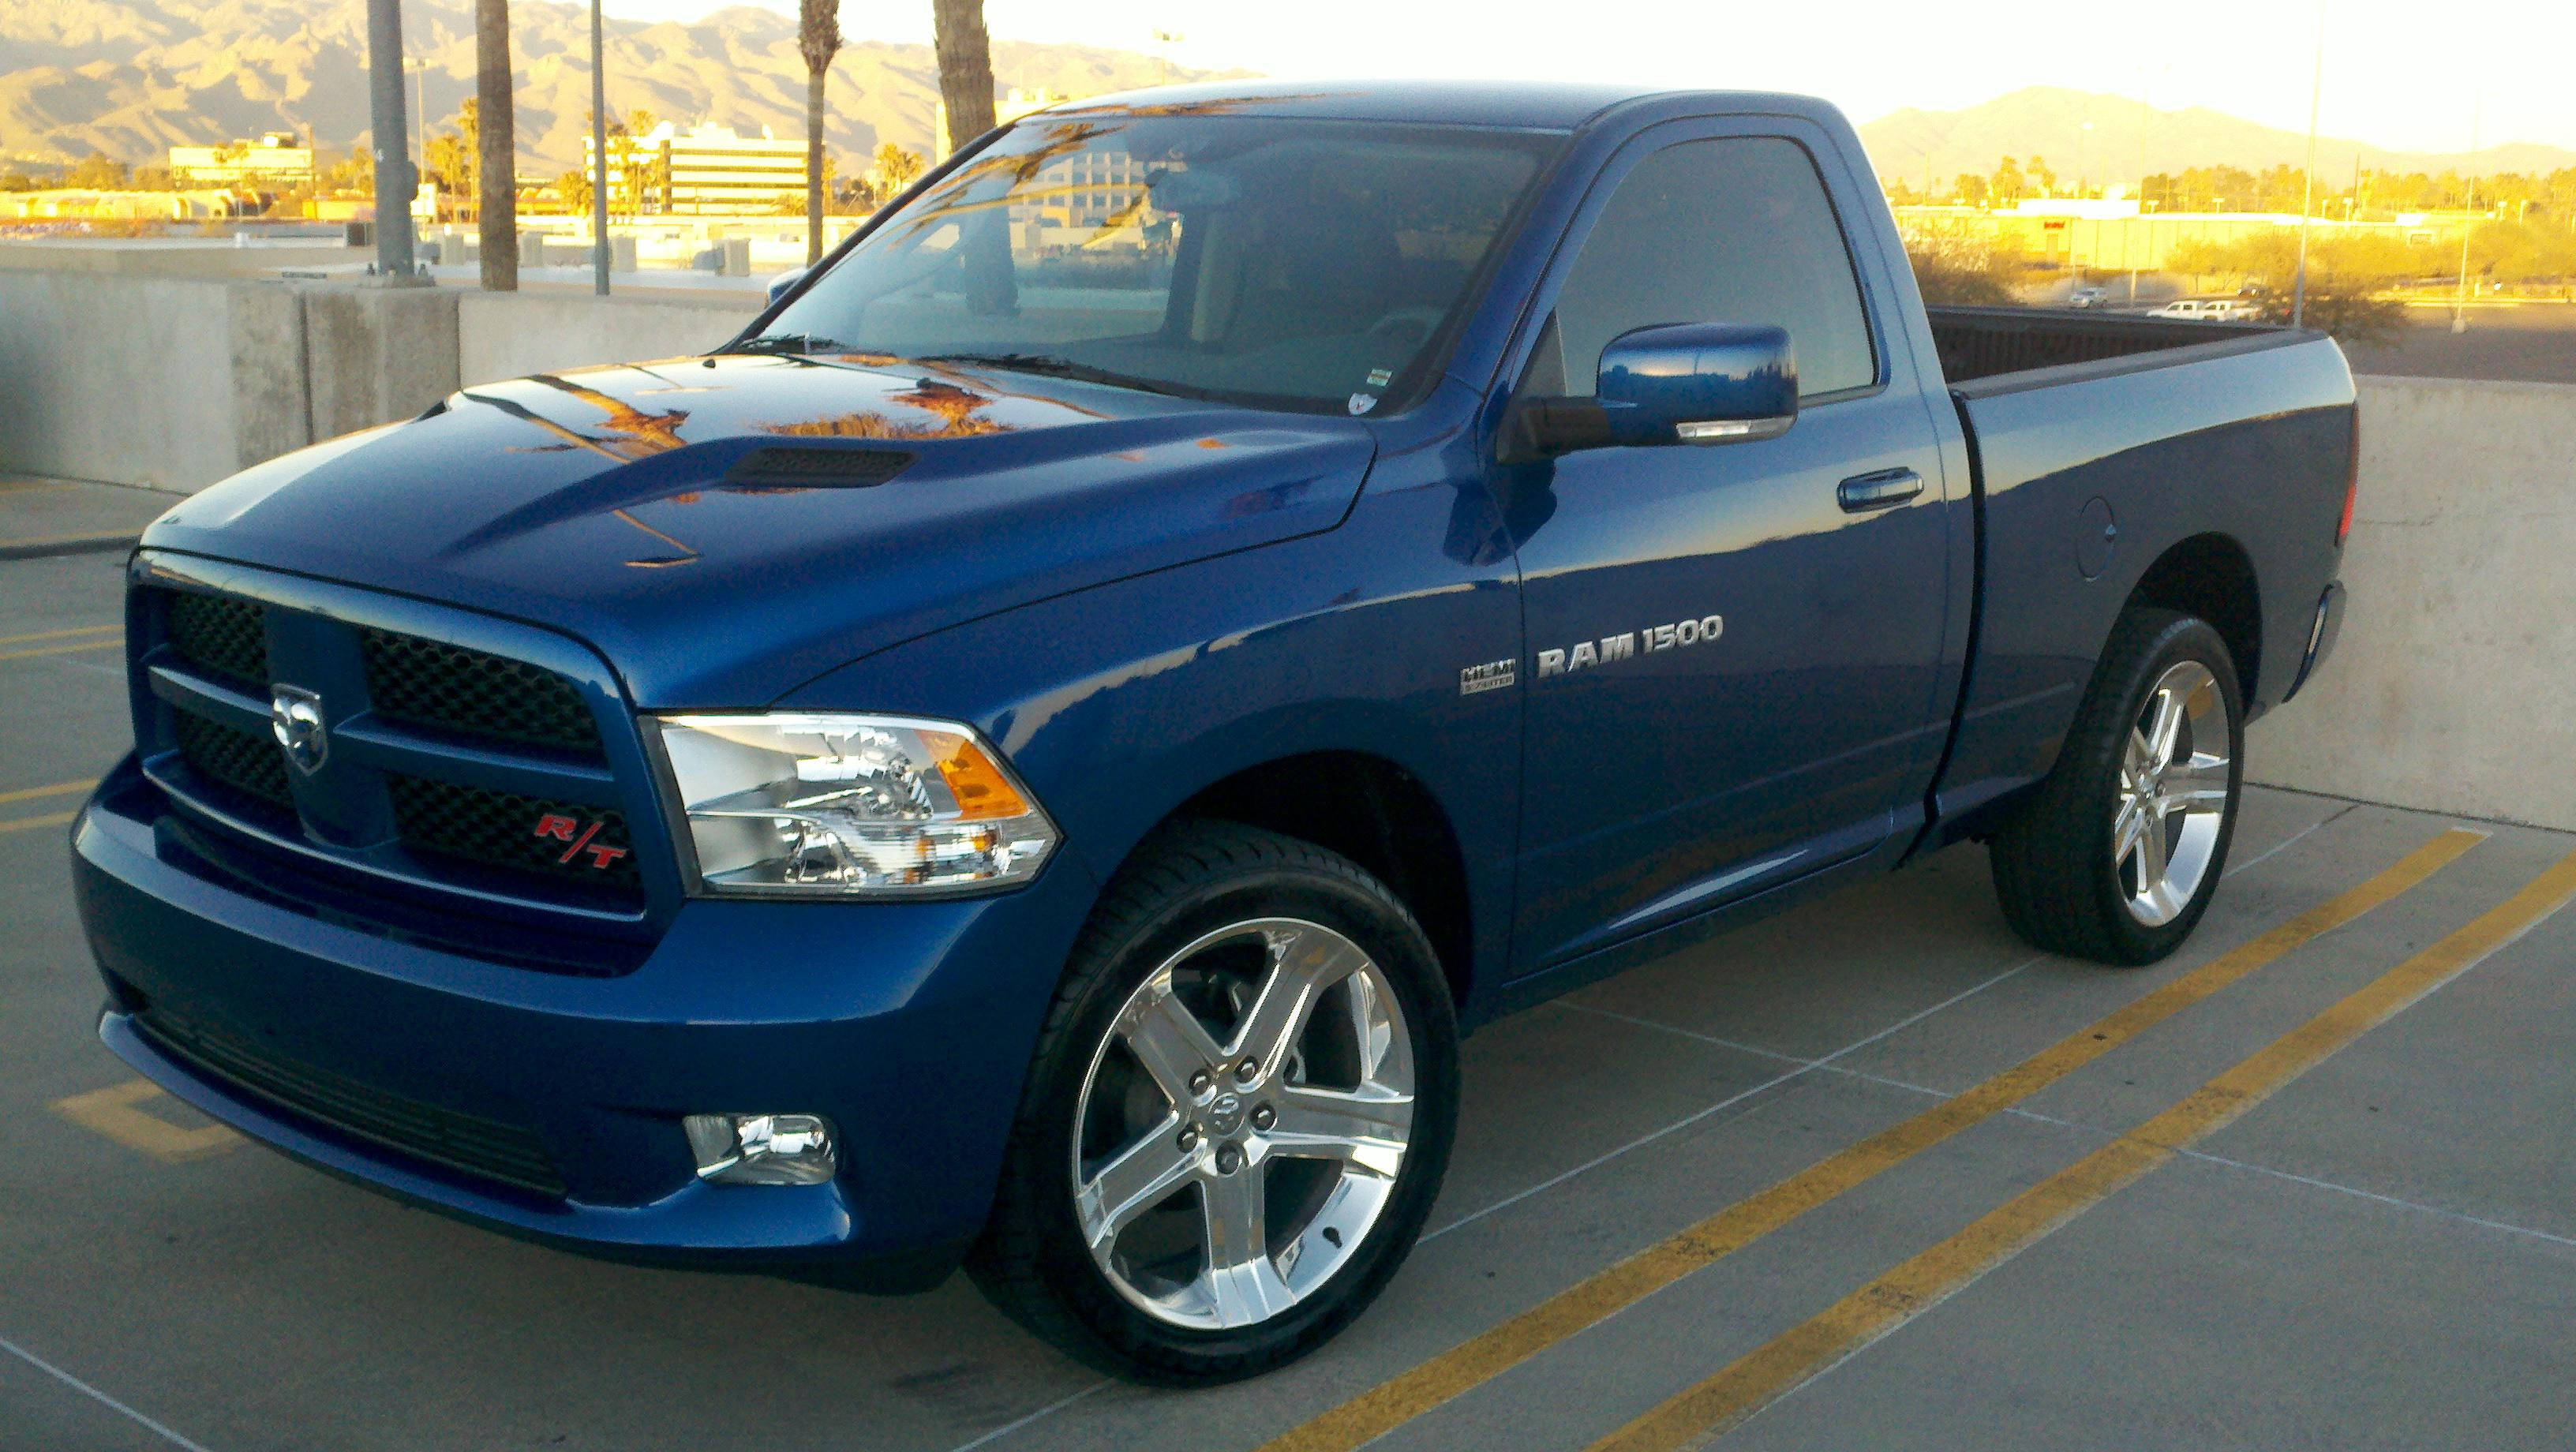 LukeJohnRogers 2011 Dodge Ram 1500 Regular Cab Specs, Photos, Modification Info at CarDomain